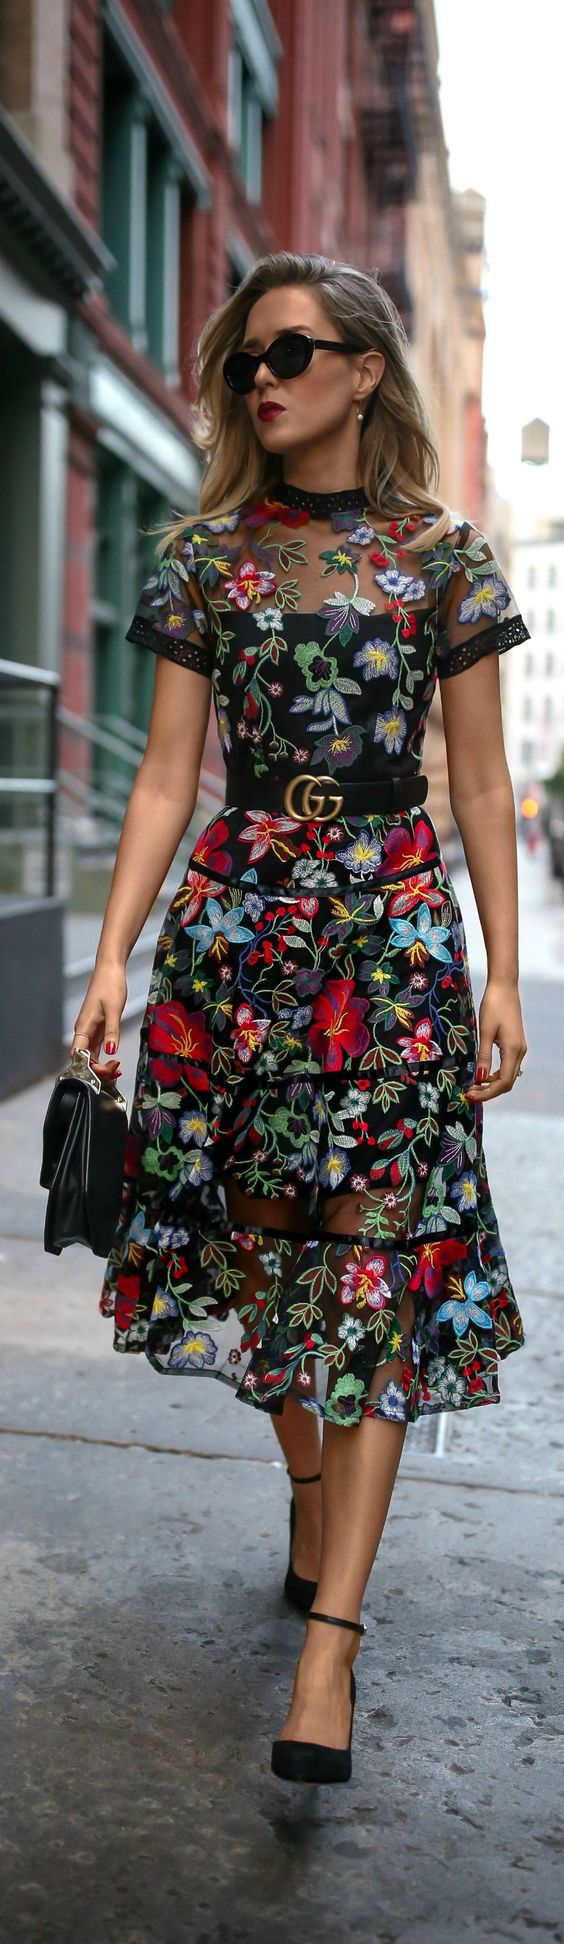 Trend Memo Day 6: Fall Florals // Floral embroidered midi dress, leather waist belt, ankle strap pumps, mini shoulder bag, cat eye sunglasses, pearl drop earrings {Anthropologie, Gucci, Sam Edelman, Marc Jacobs}